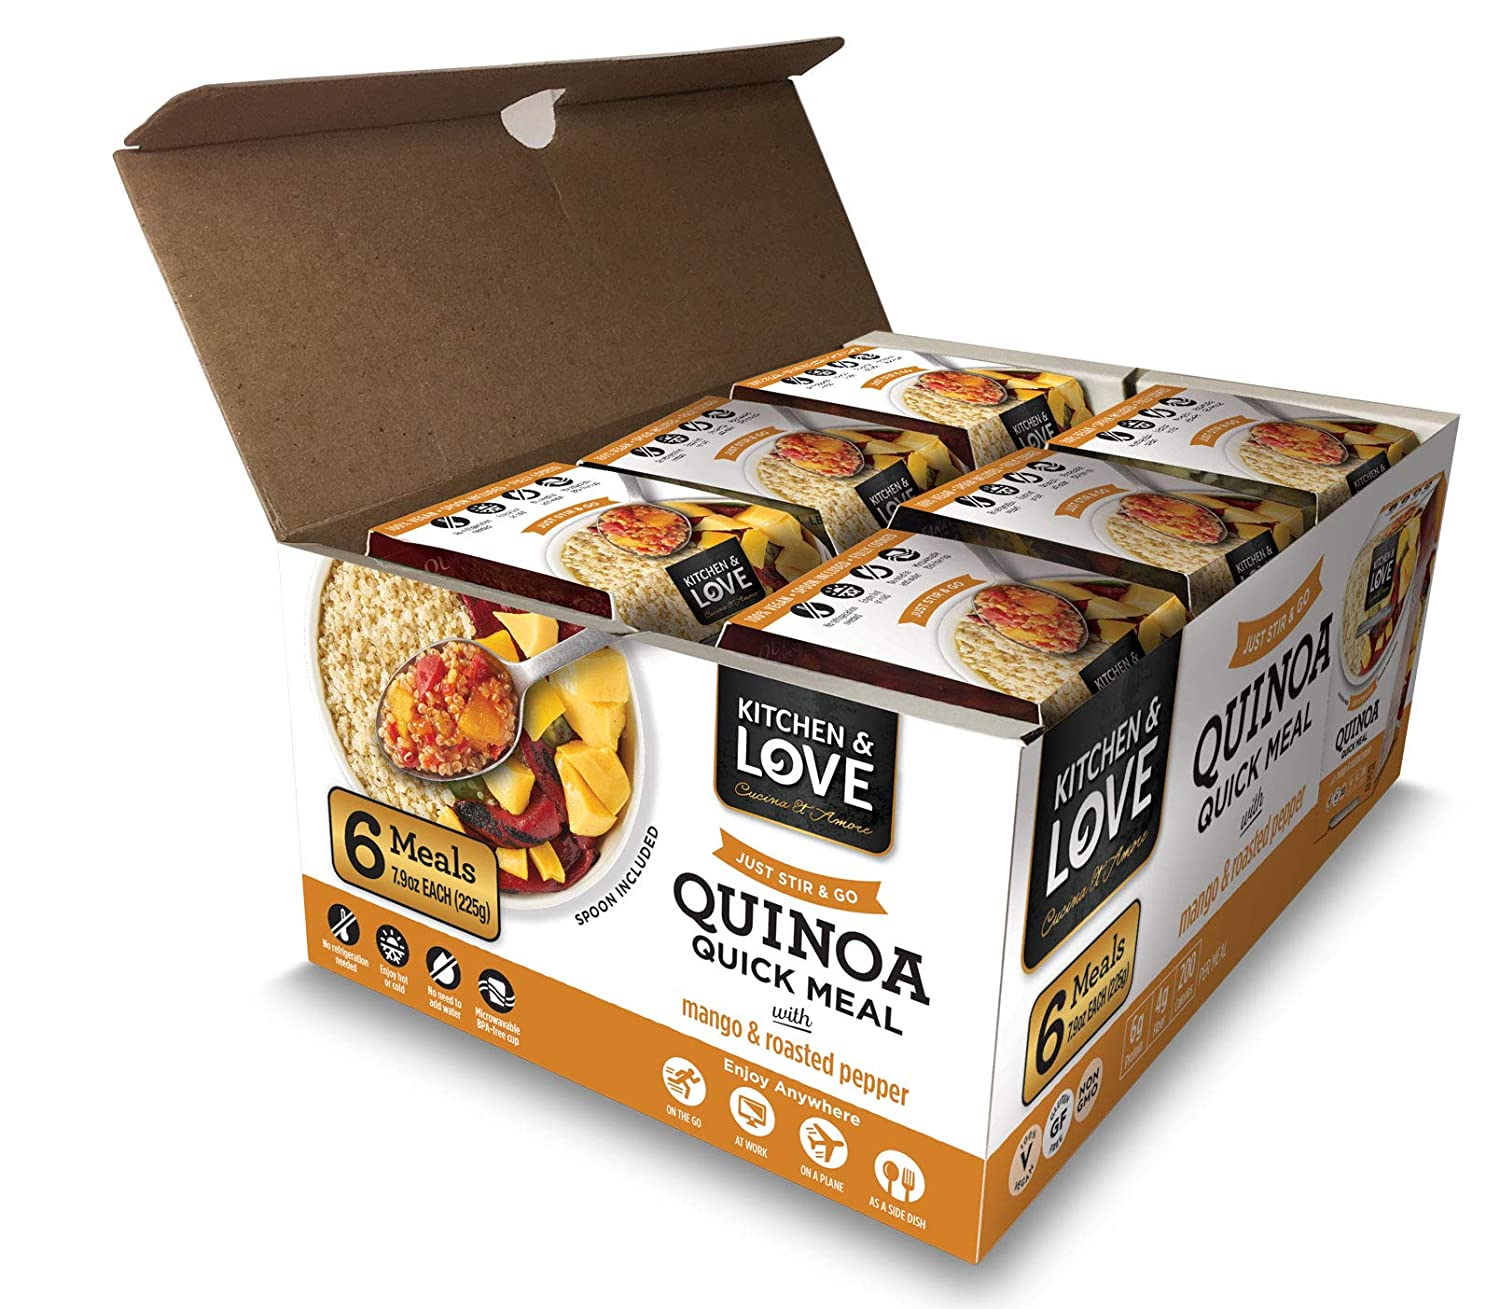 Kitchen & Love Mango & Roasted Peppers Quinoa Quick Meal 6 Pack